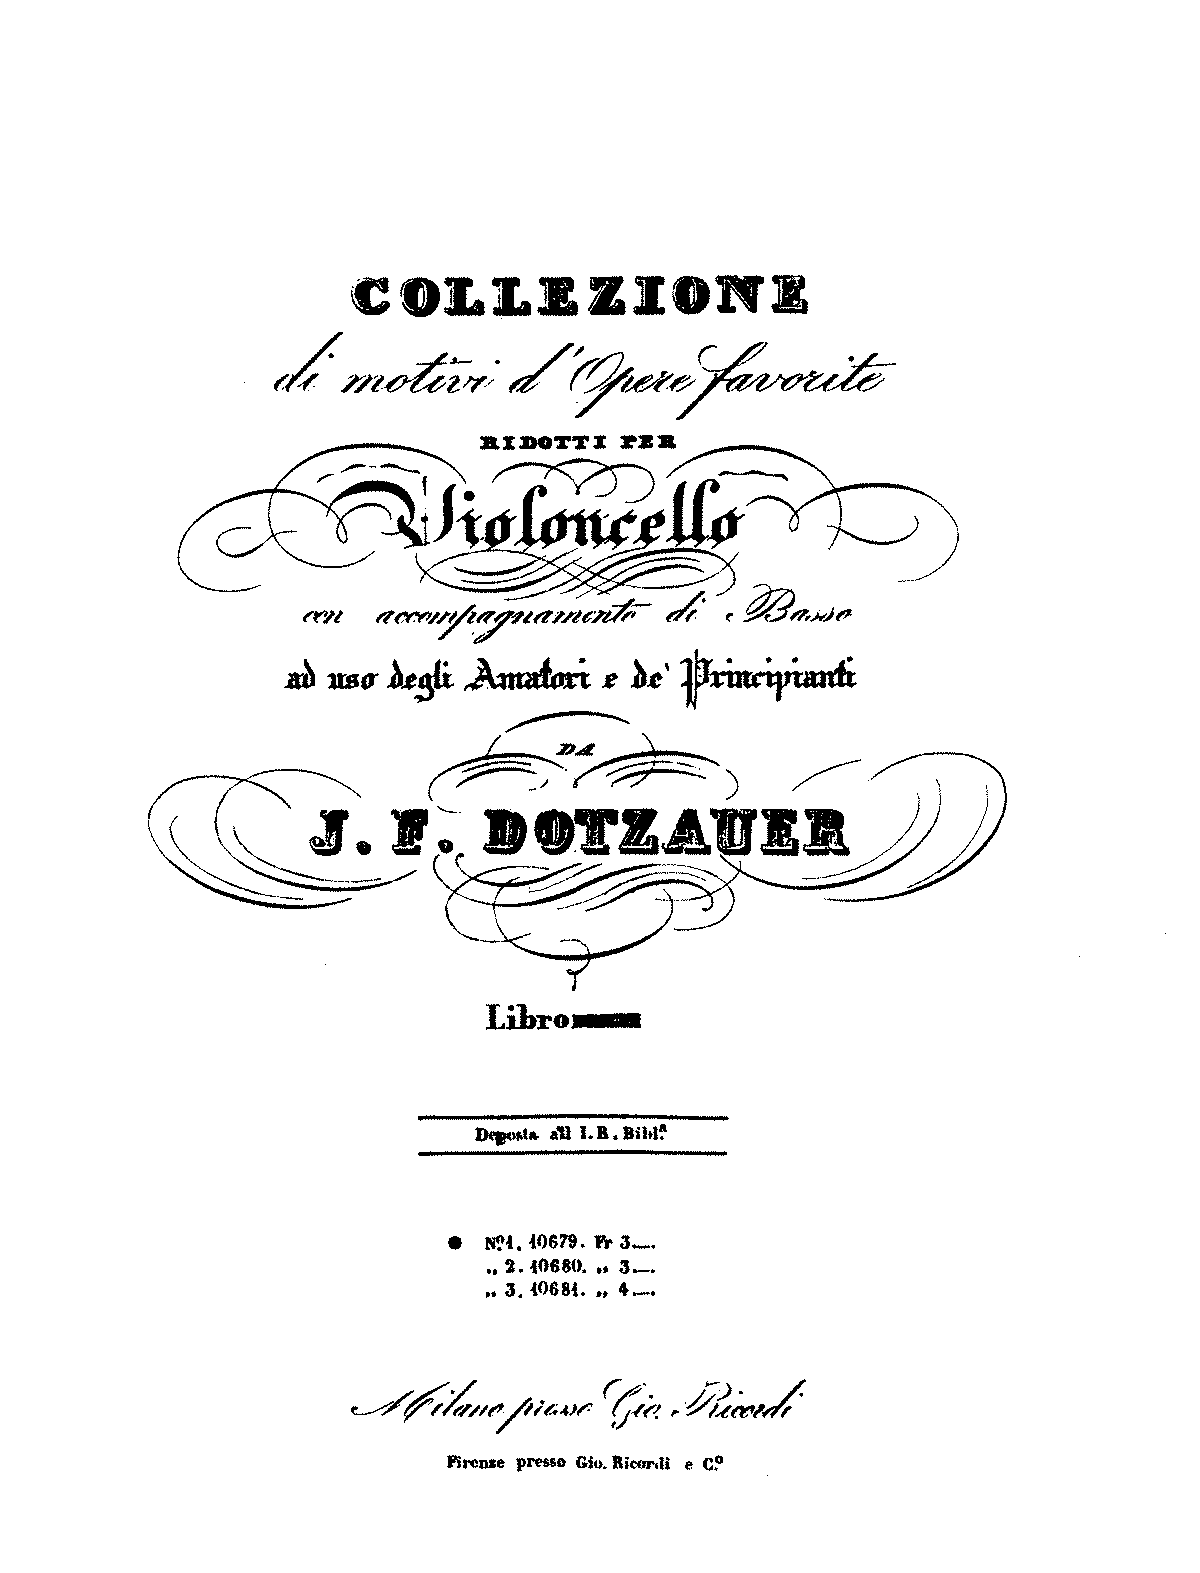 PMLP338402-Dotzauer - Collection of Favorite Opera motifs for 2 cellos Book1 Vc1.pdf